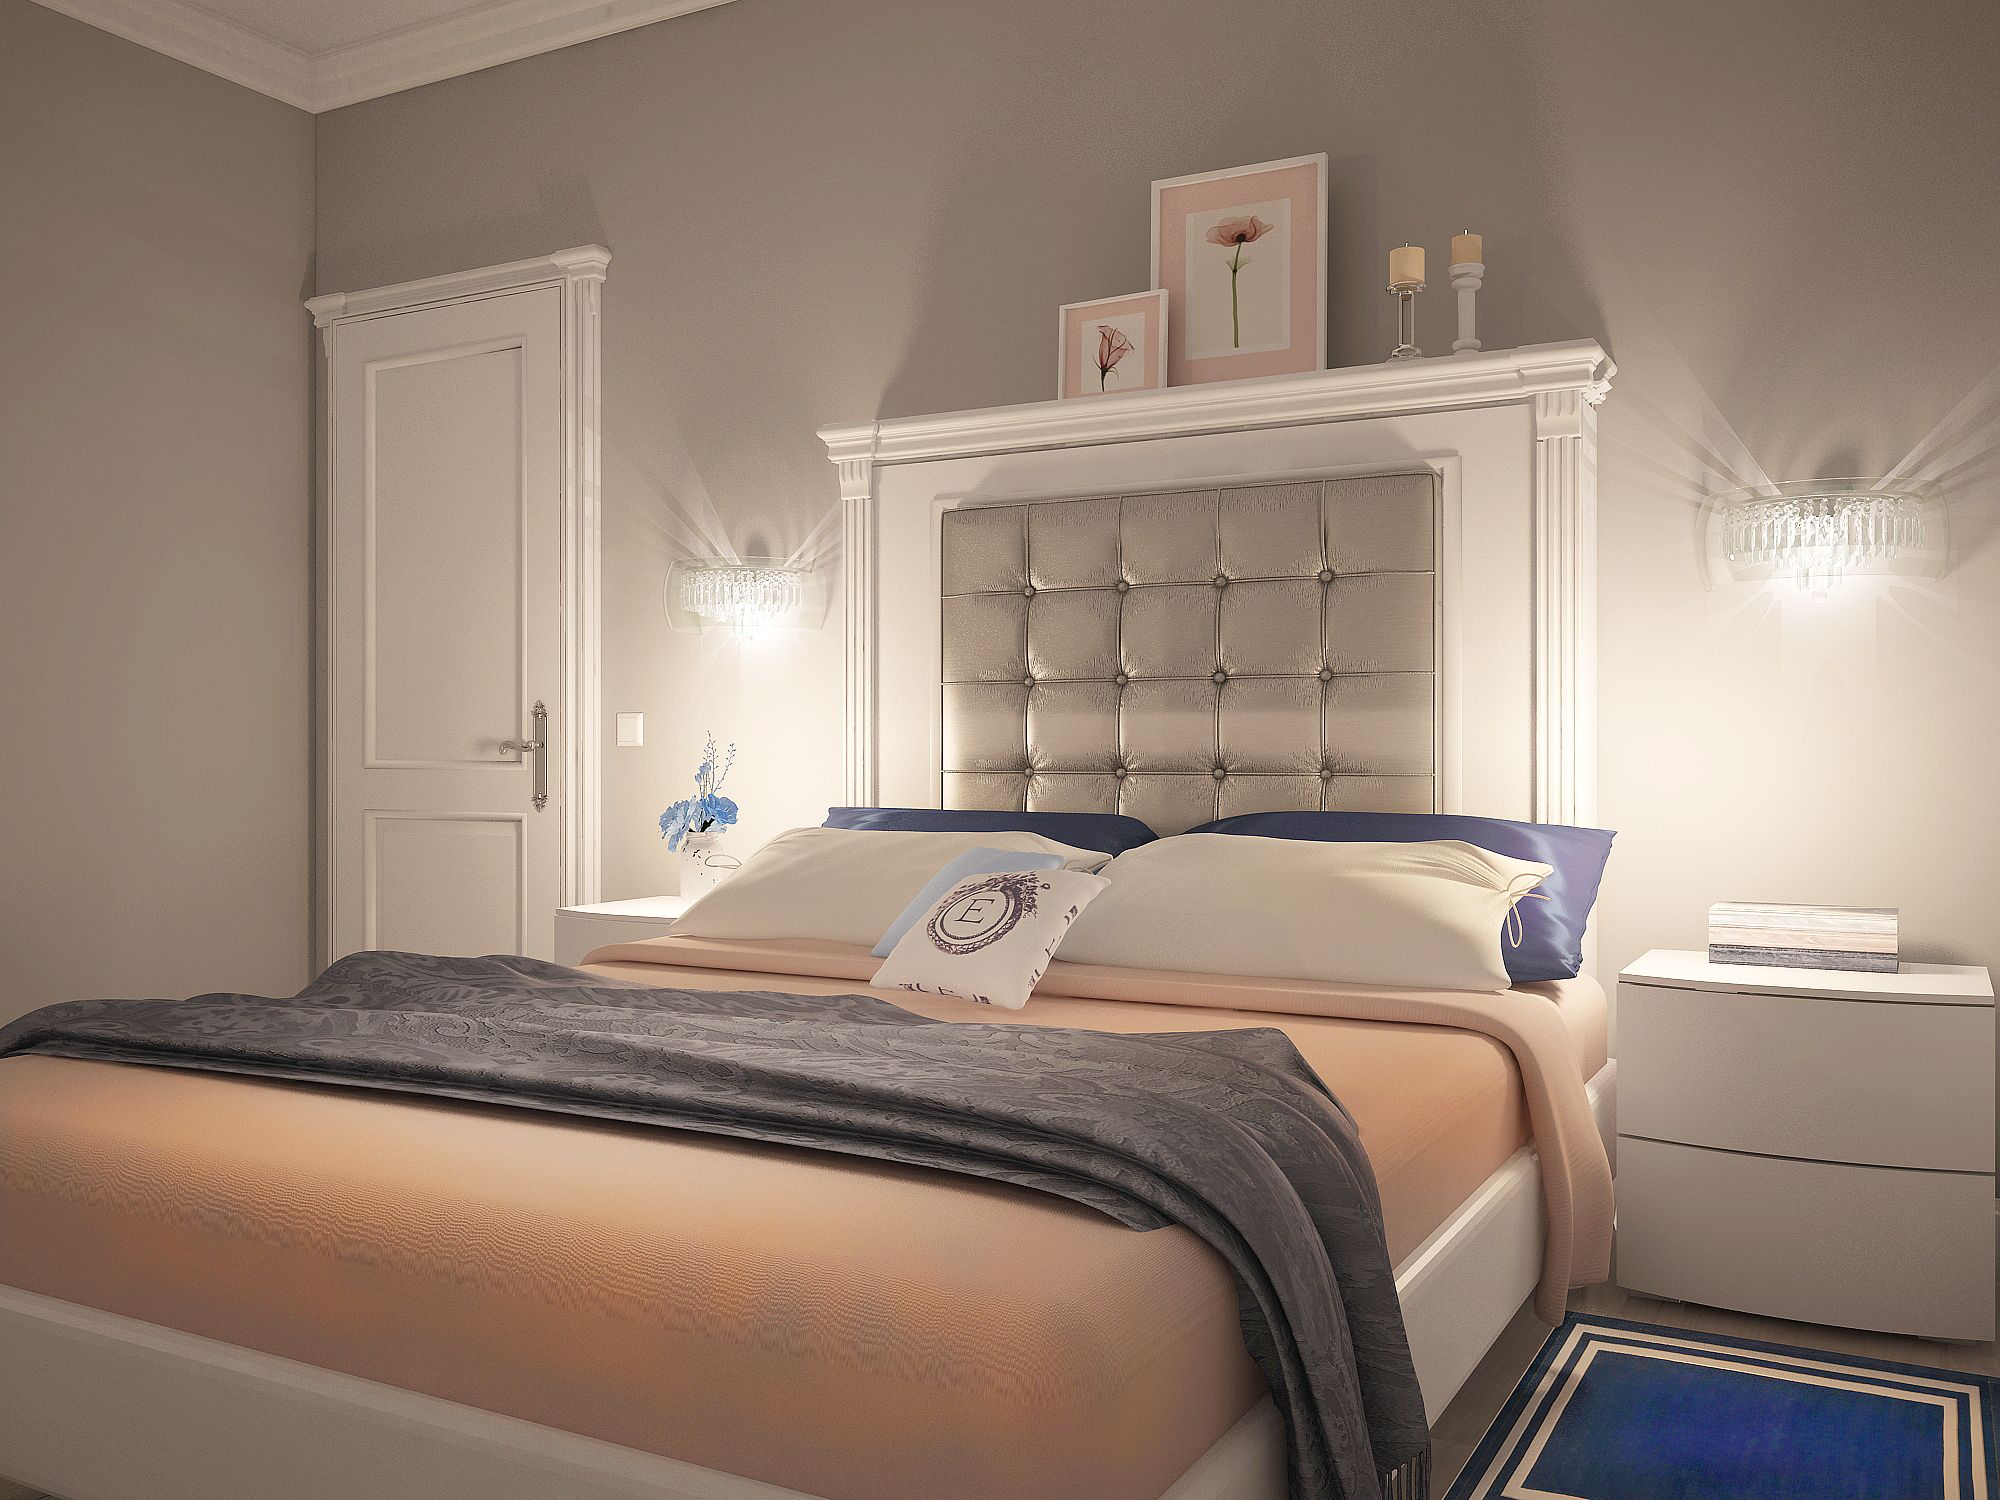 Grey bedroom with peach and blue accents